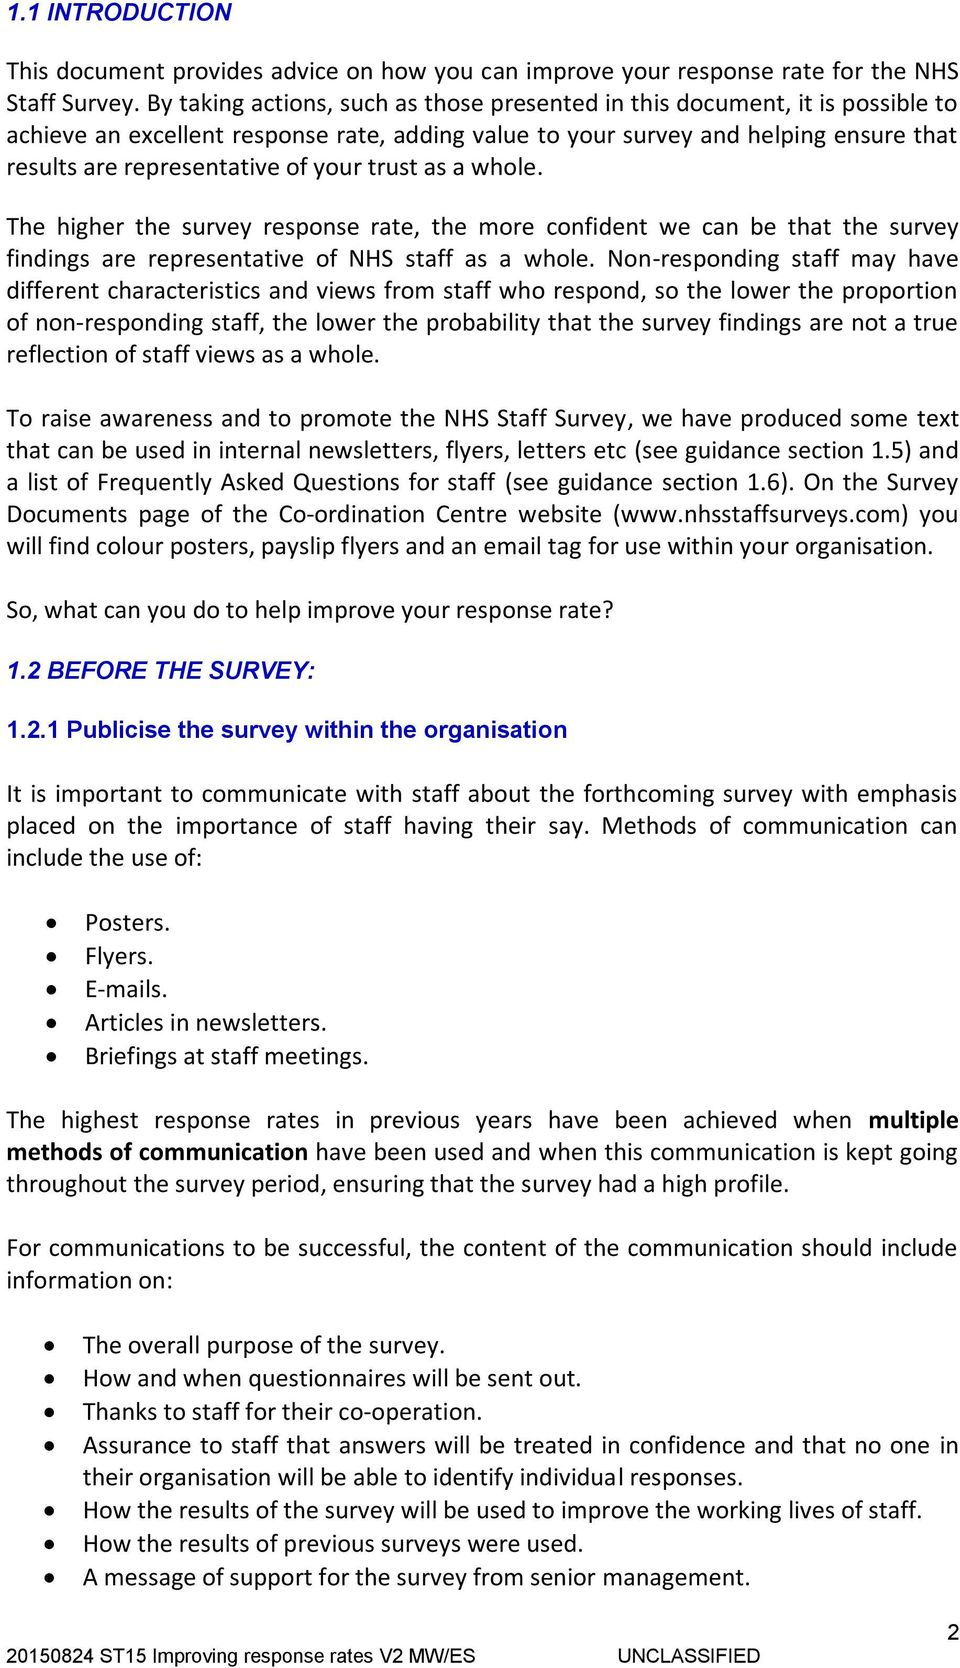 your trust as a whole. The higher the survey response rate, the more confident we can be that the survey findings are representative of NHS staff as a whole.